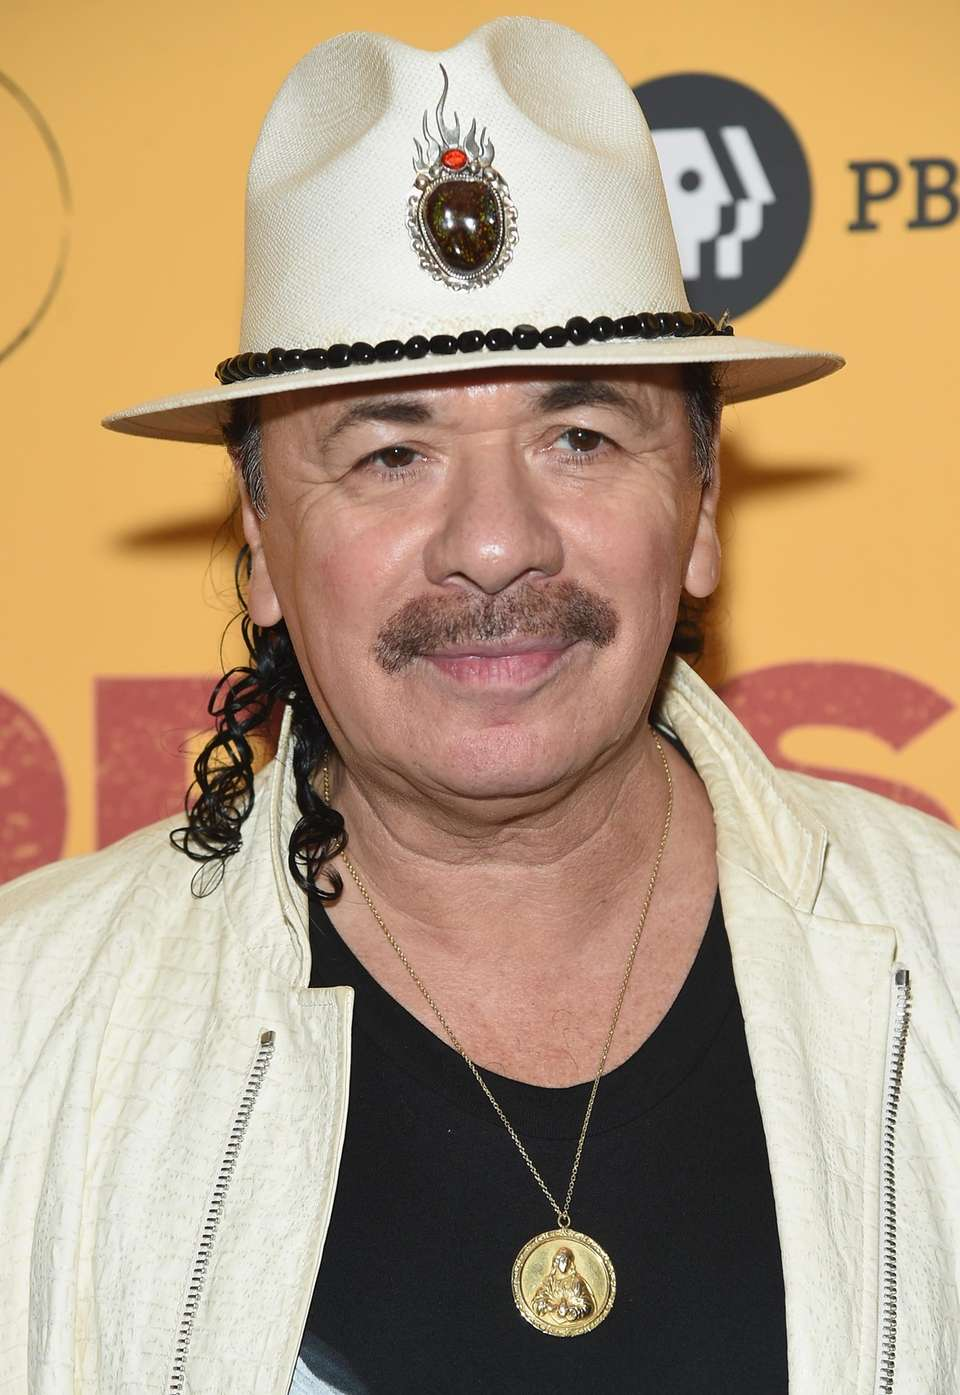 Carlos Santana attends the New York premiere of